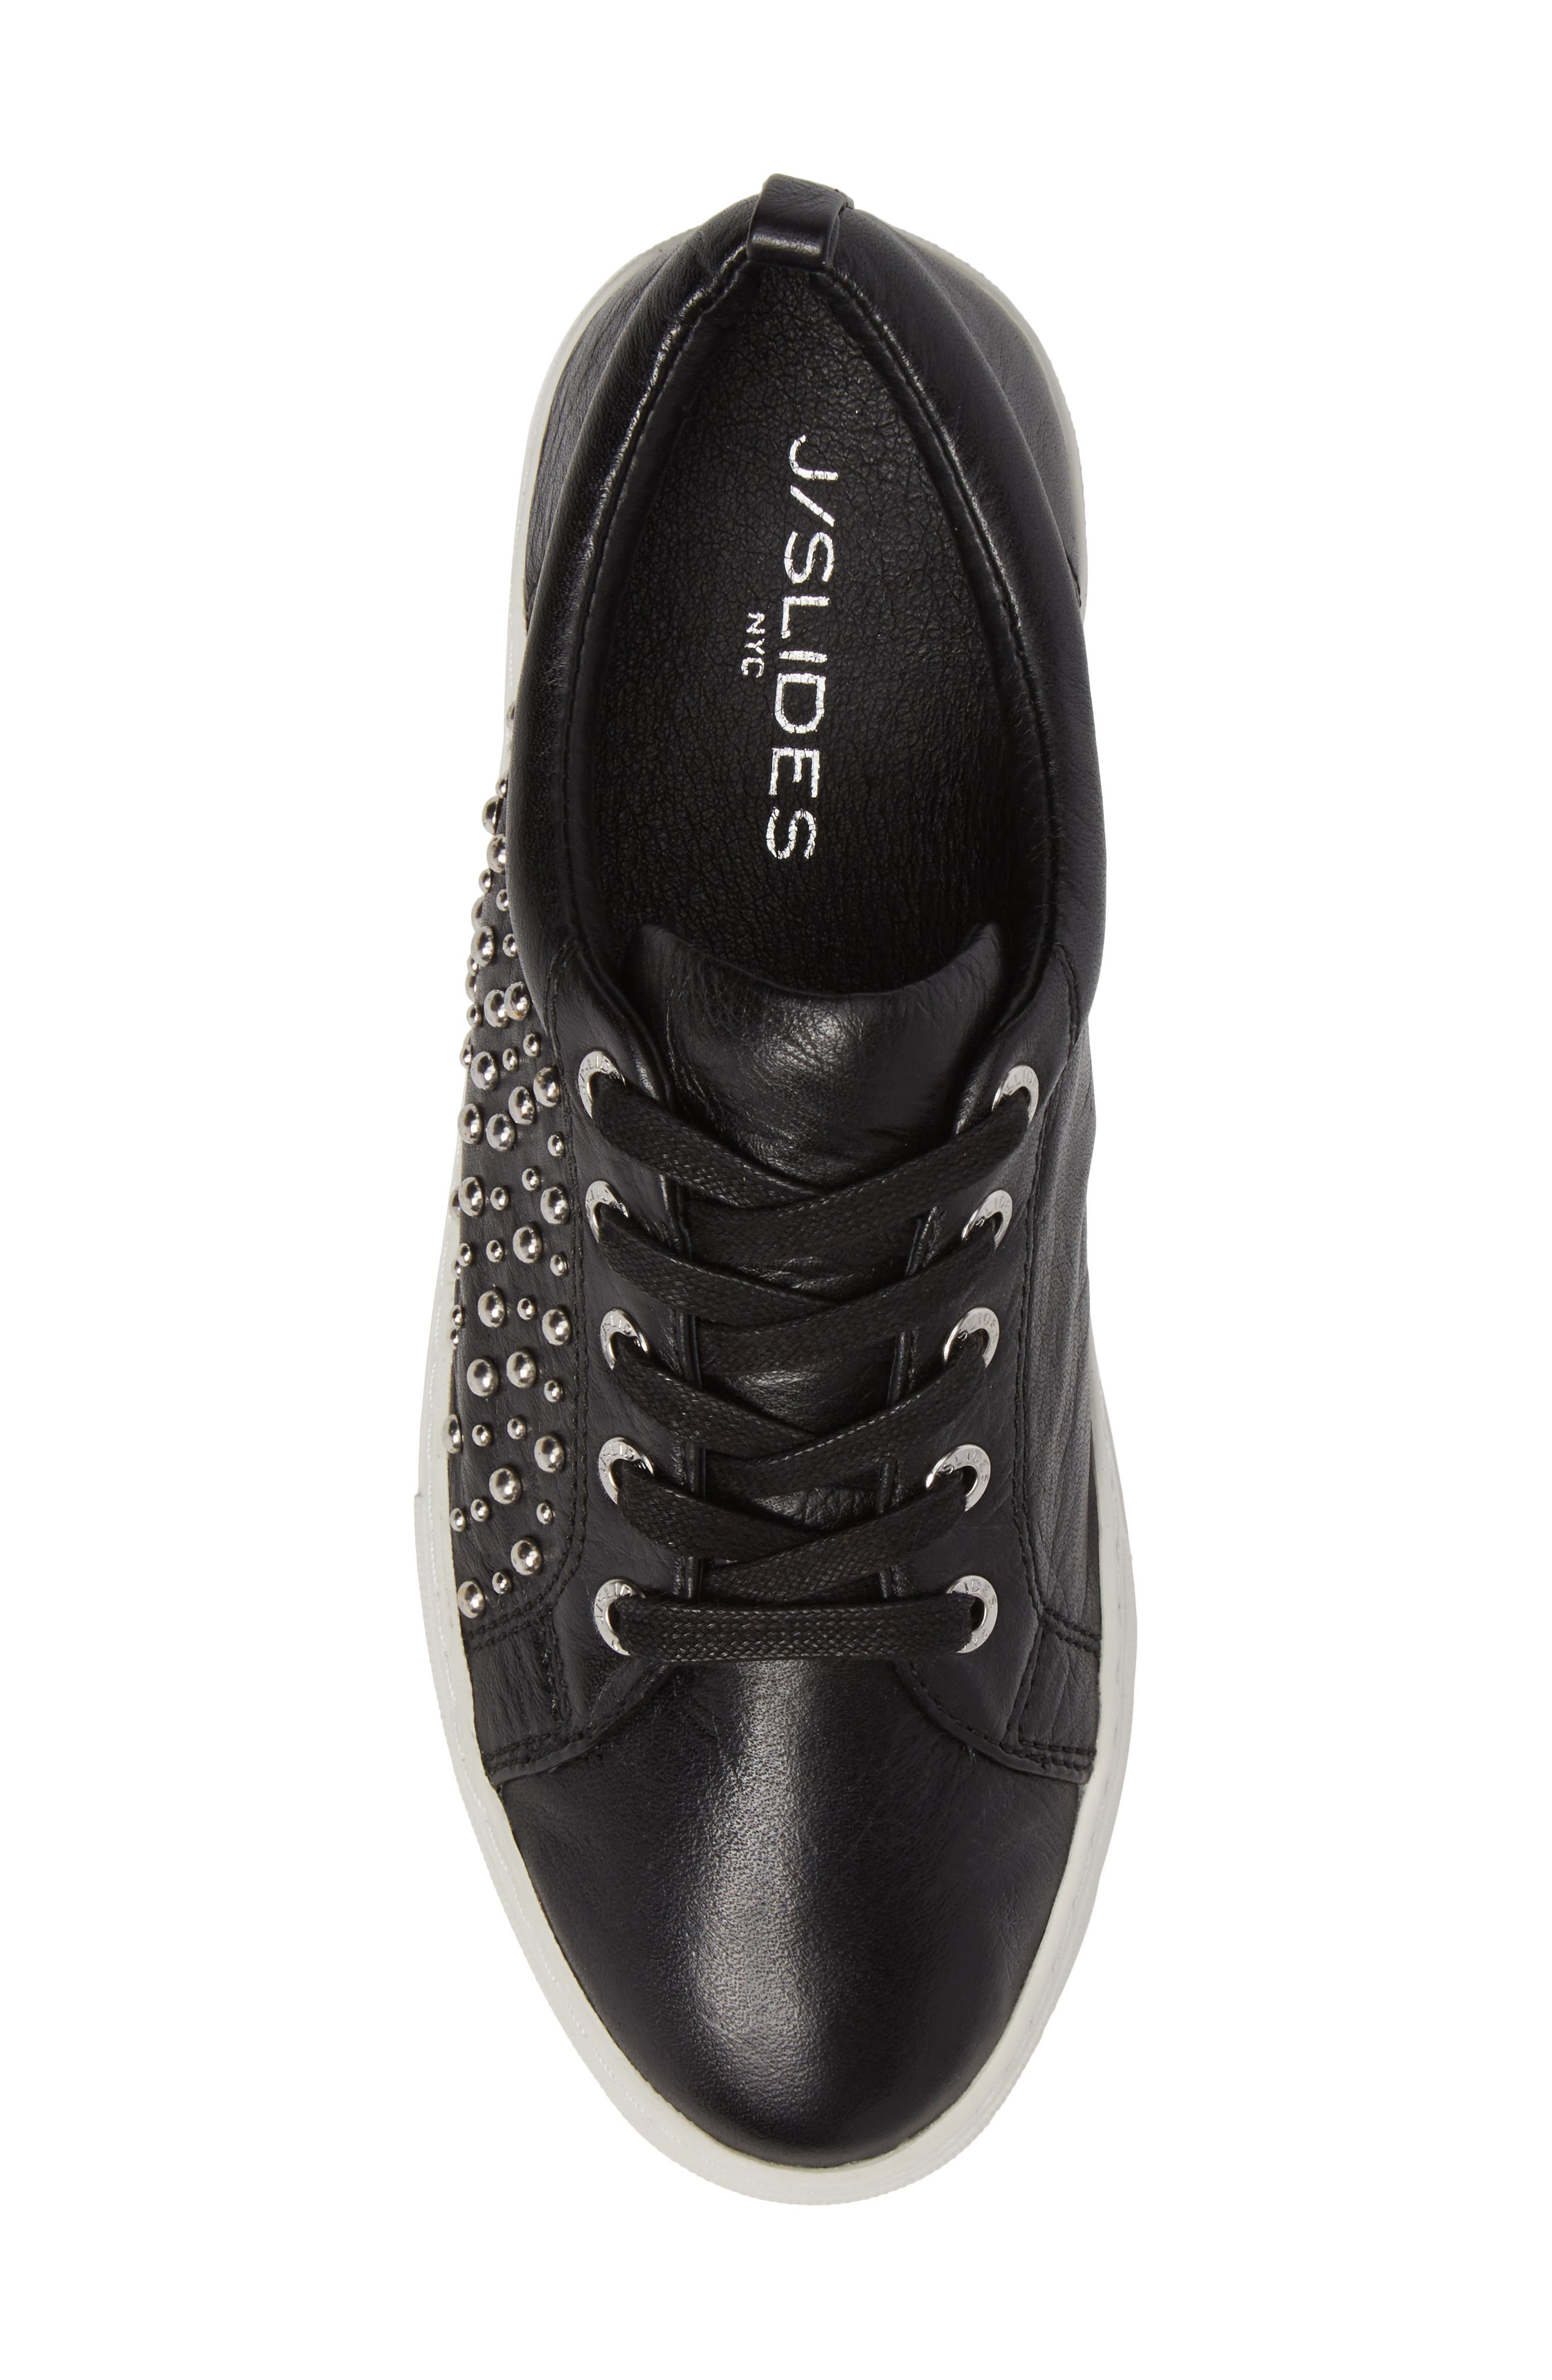 Ambrosia Studded Lace-Up Sneaker,                             Alternate thumbnail 5, color,                             Black Leather